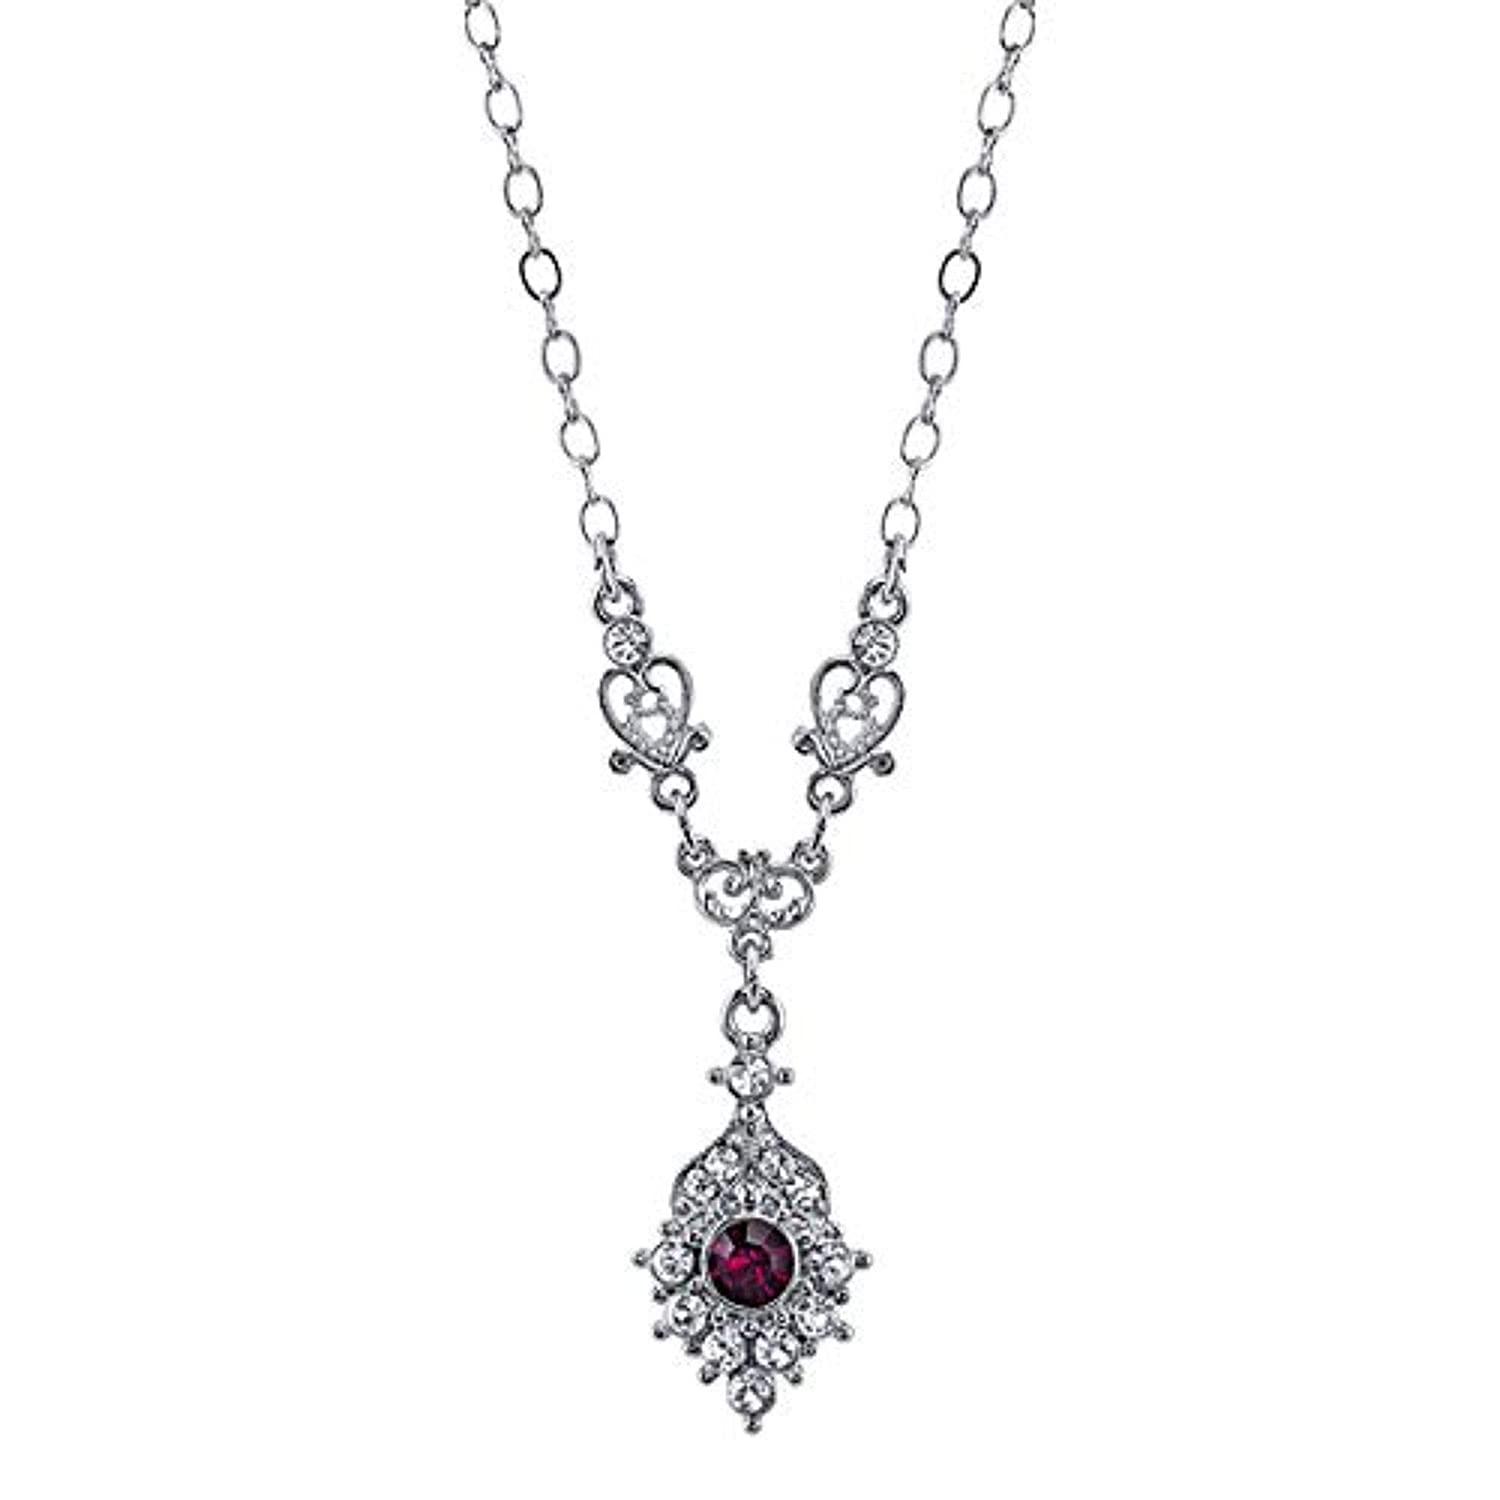 Silver-Tone Clear and Amethyst Color Crystal Necklace 16 Adj.